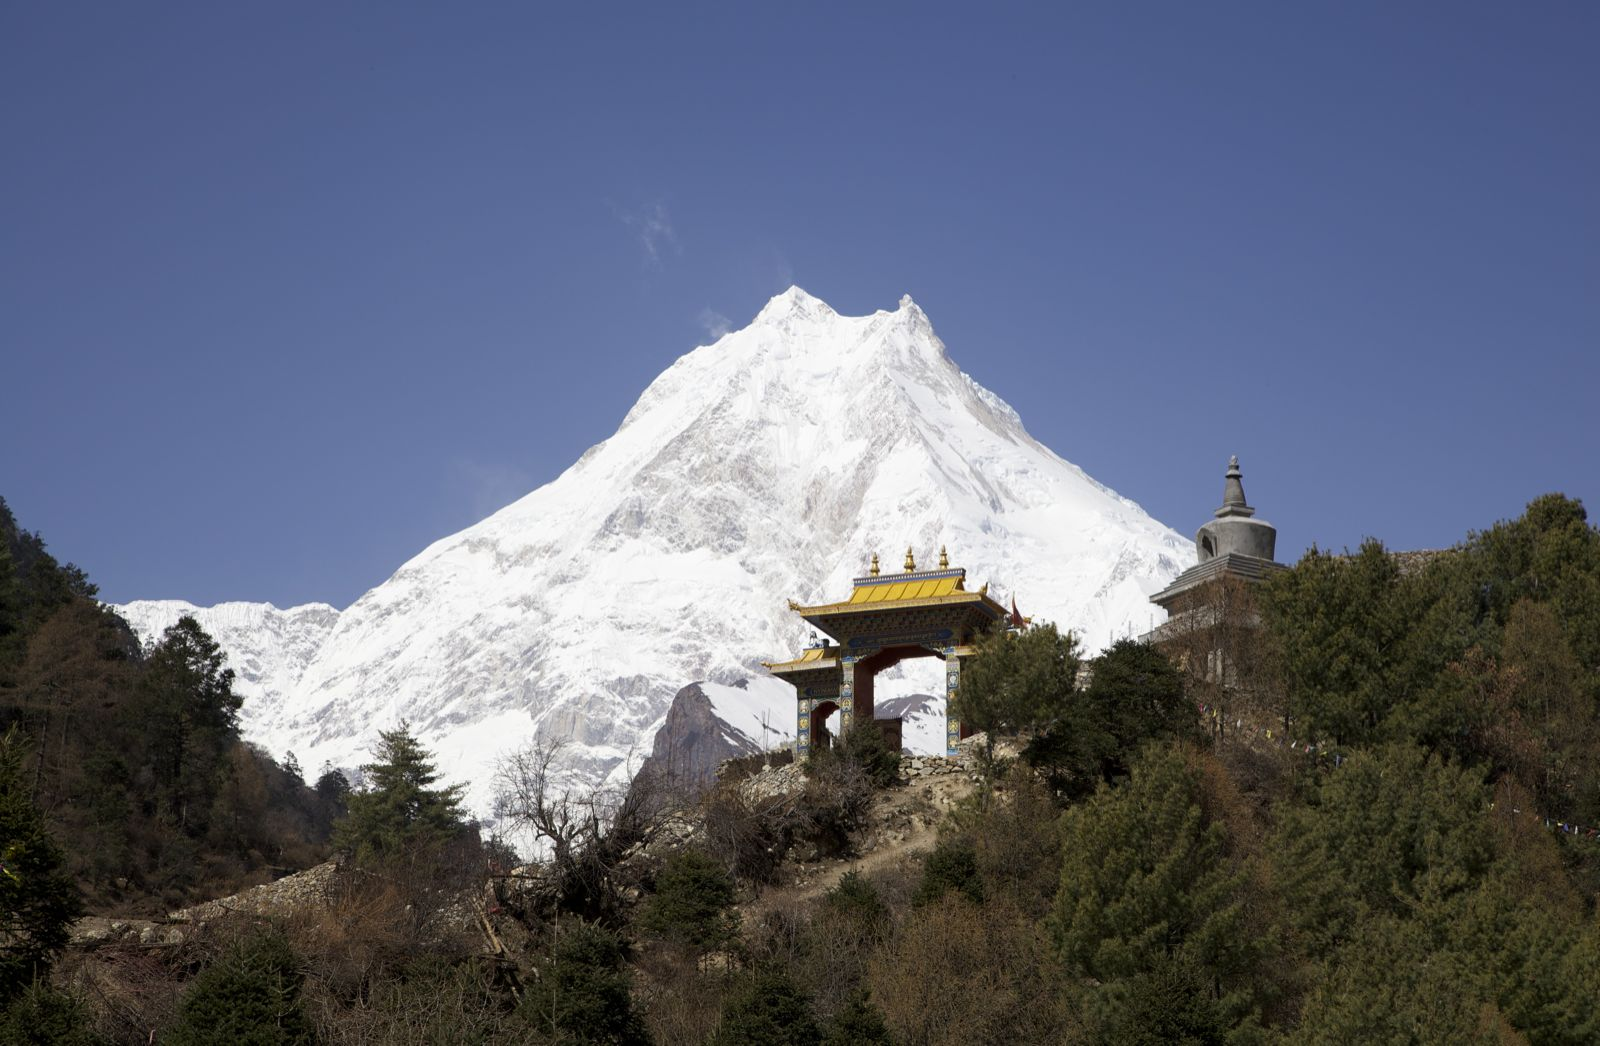 Manaslu seen from Lho